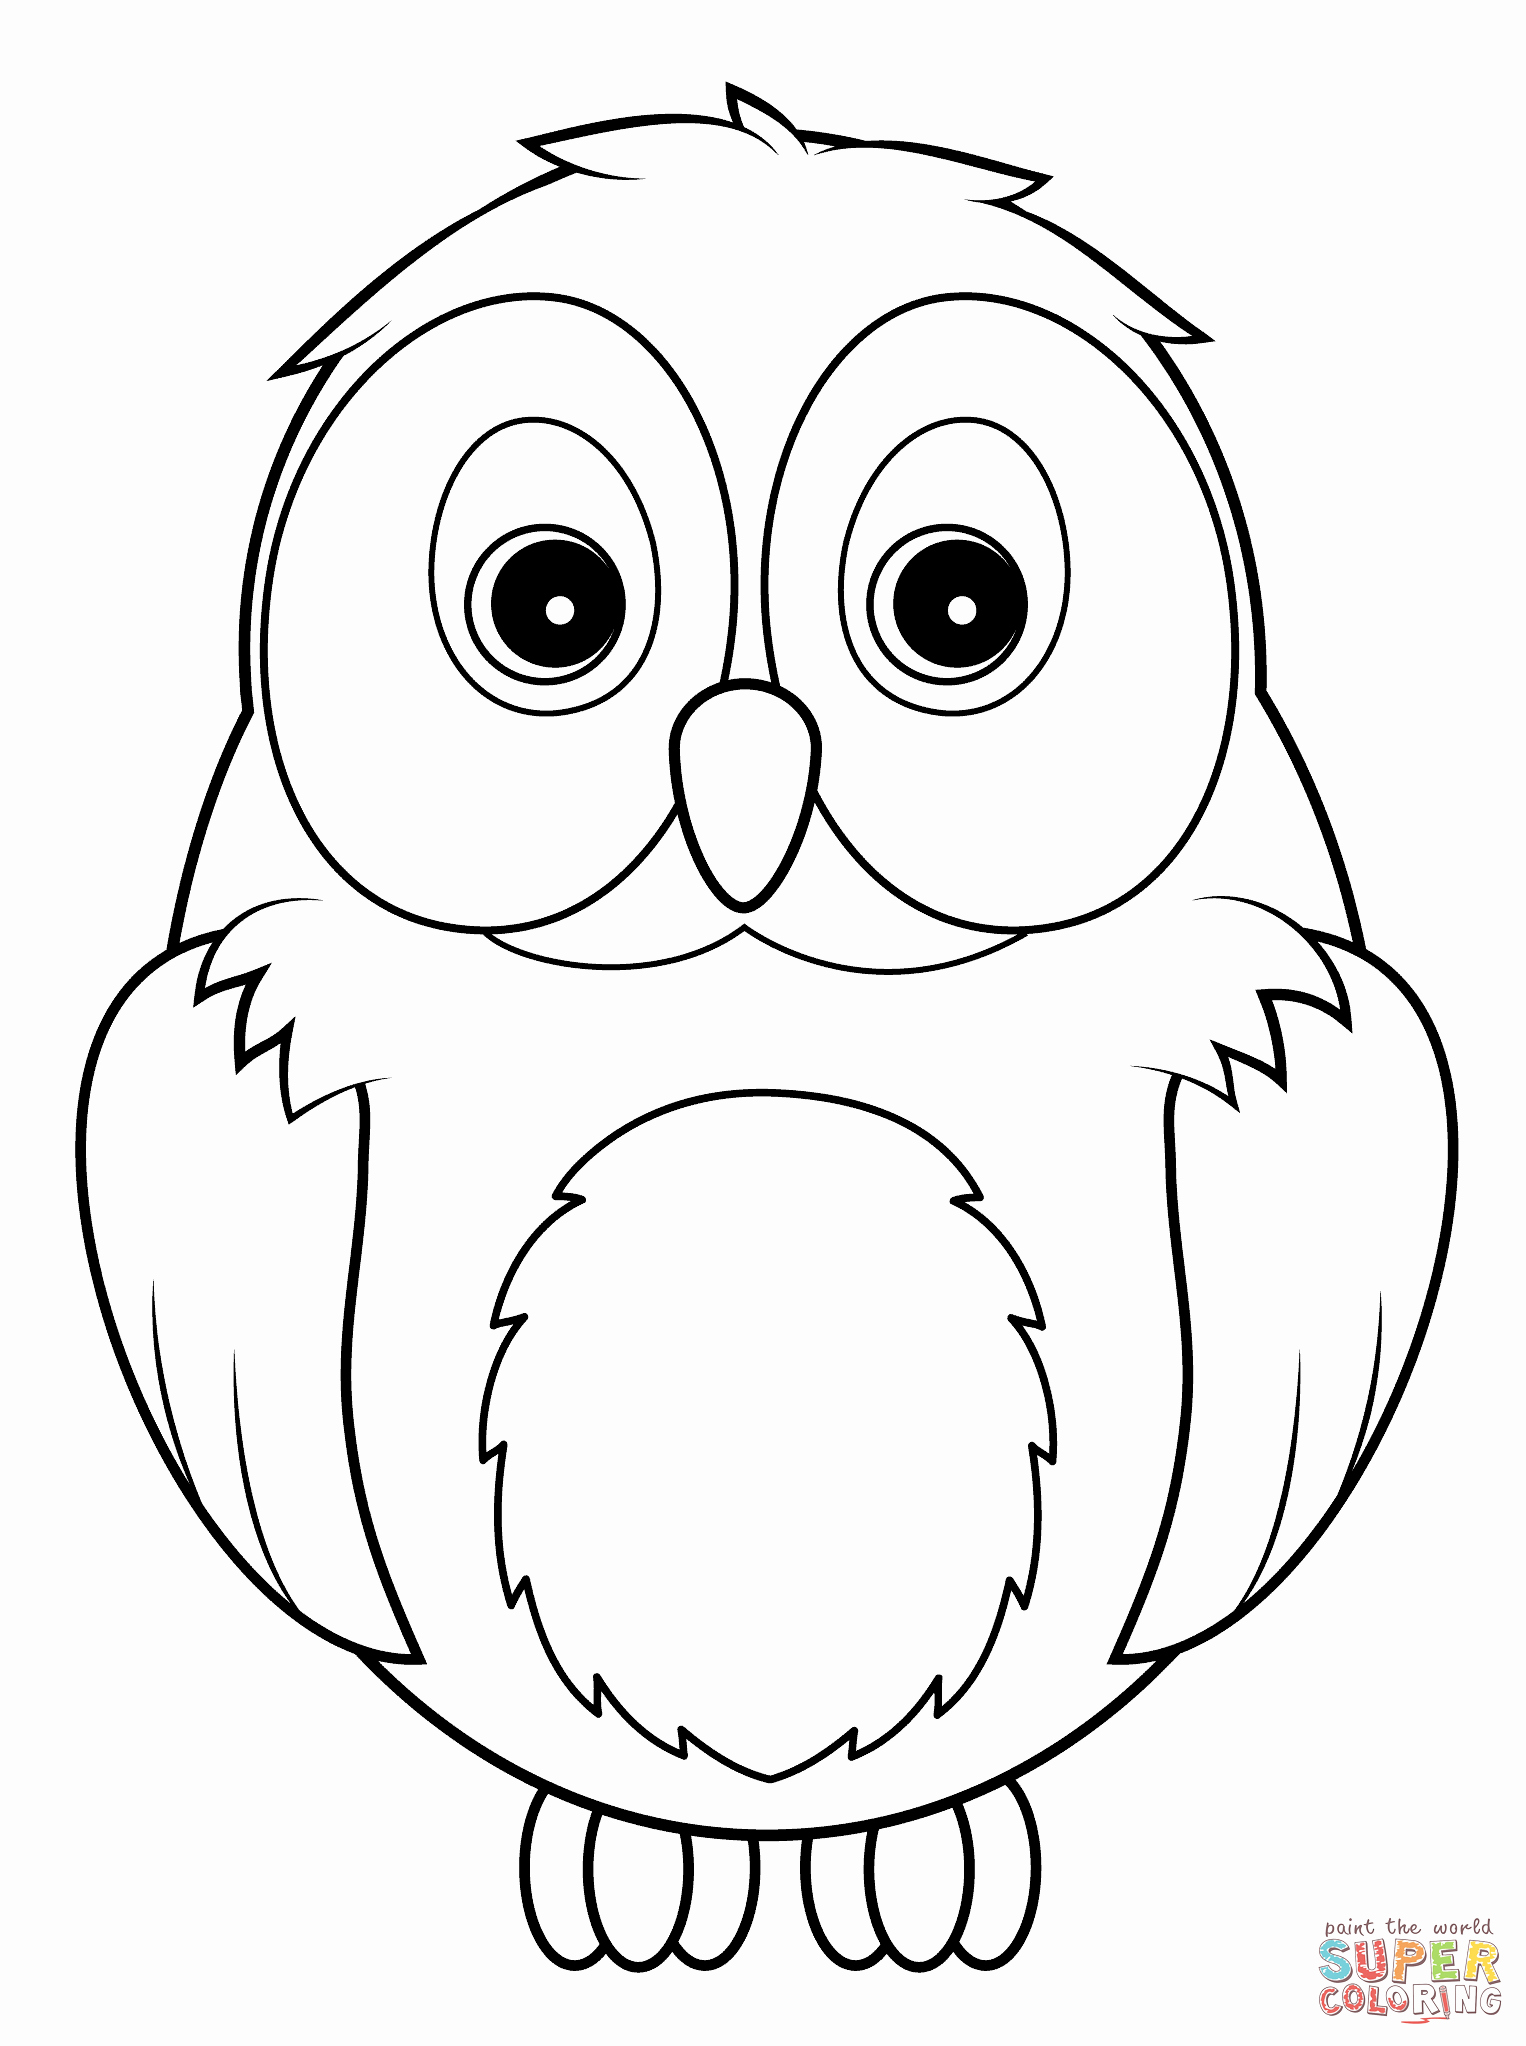 Free Owl Printable Template Inspirational Cute Owl Coloring Page